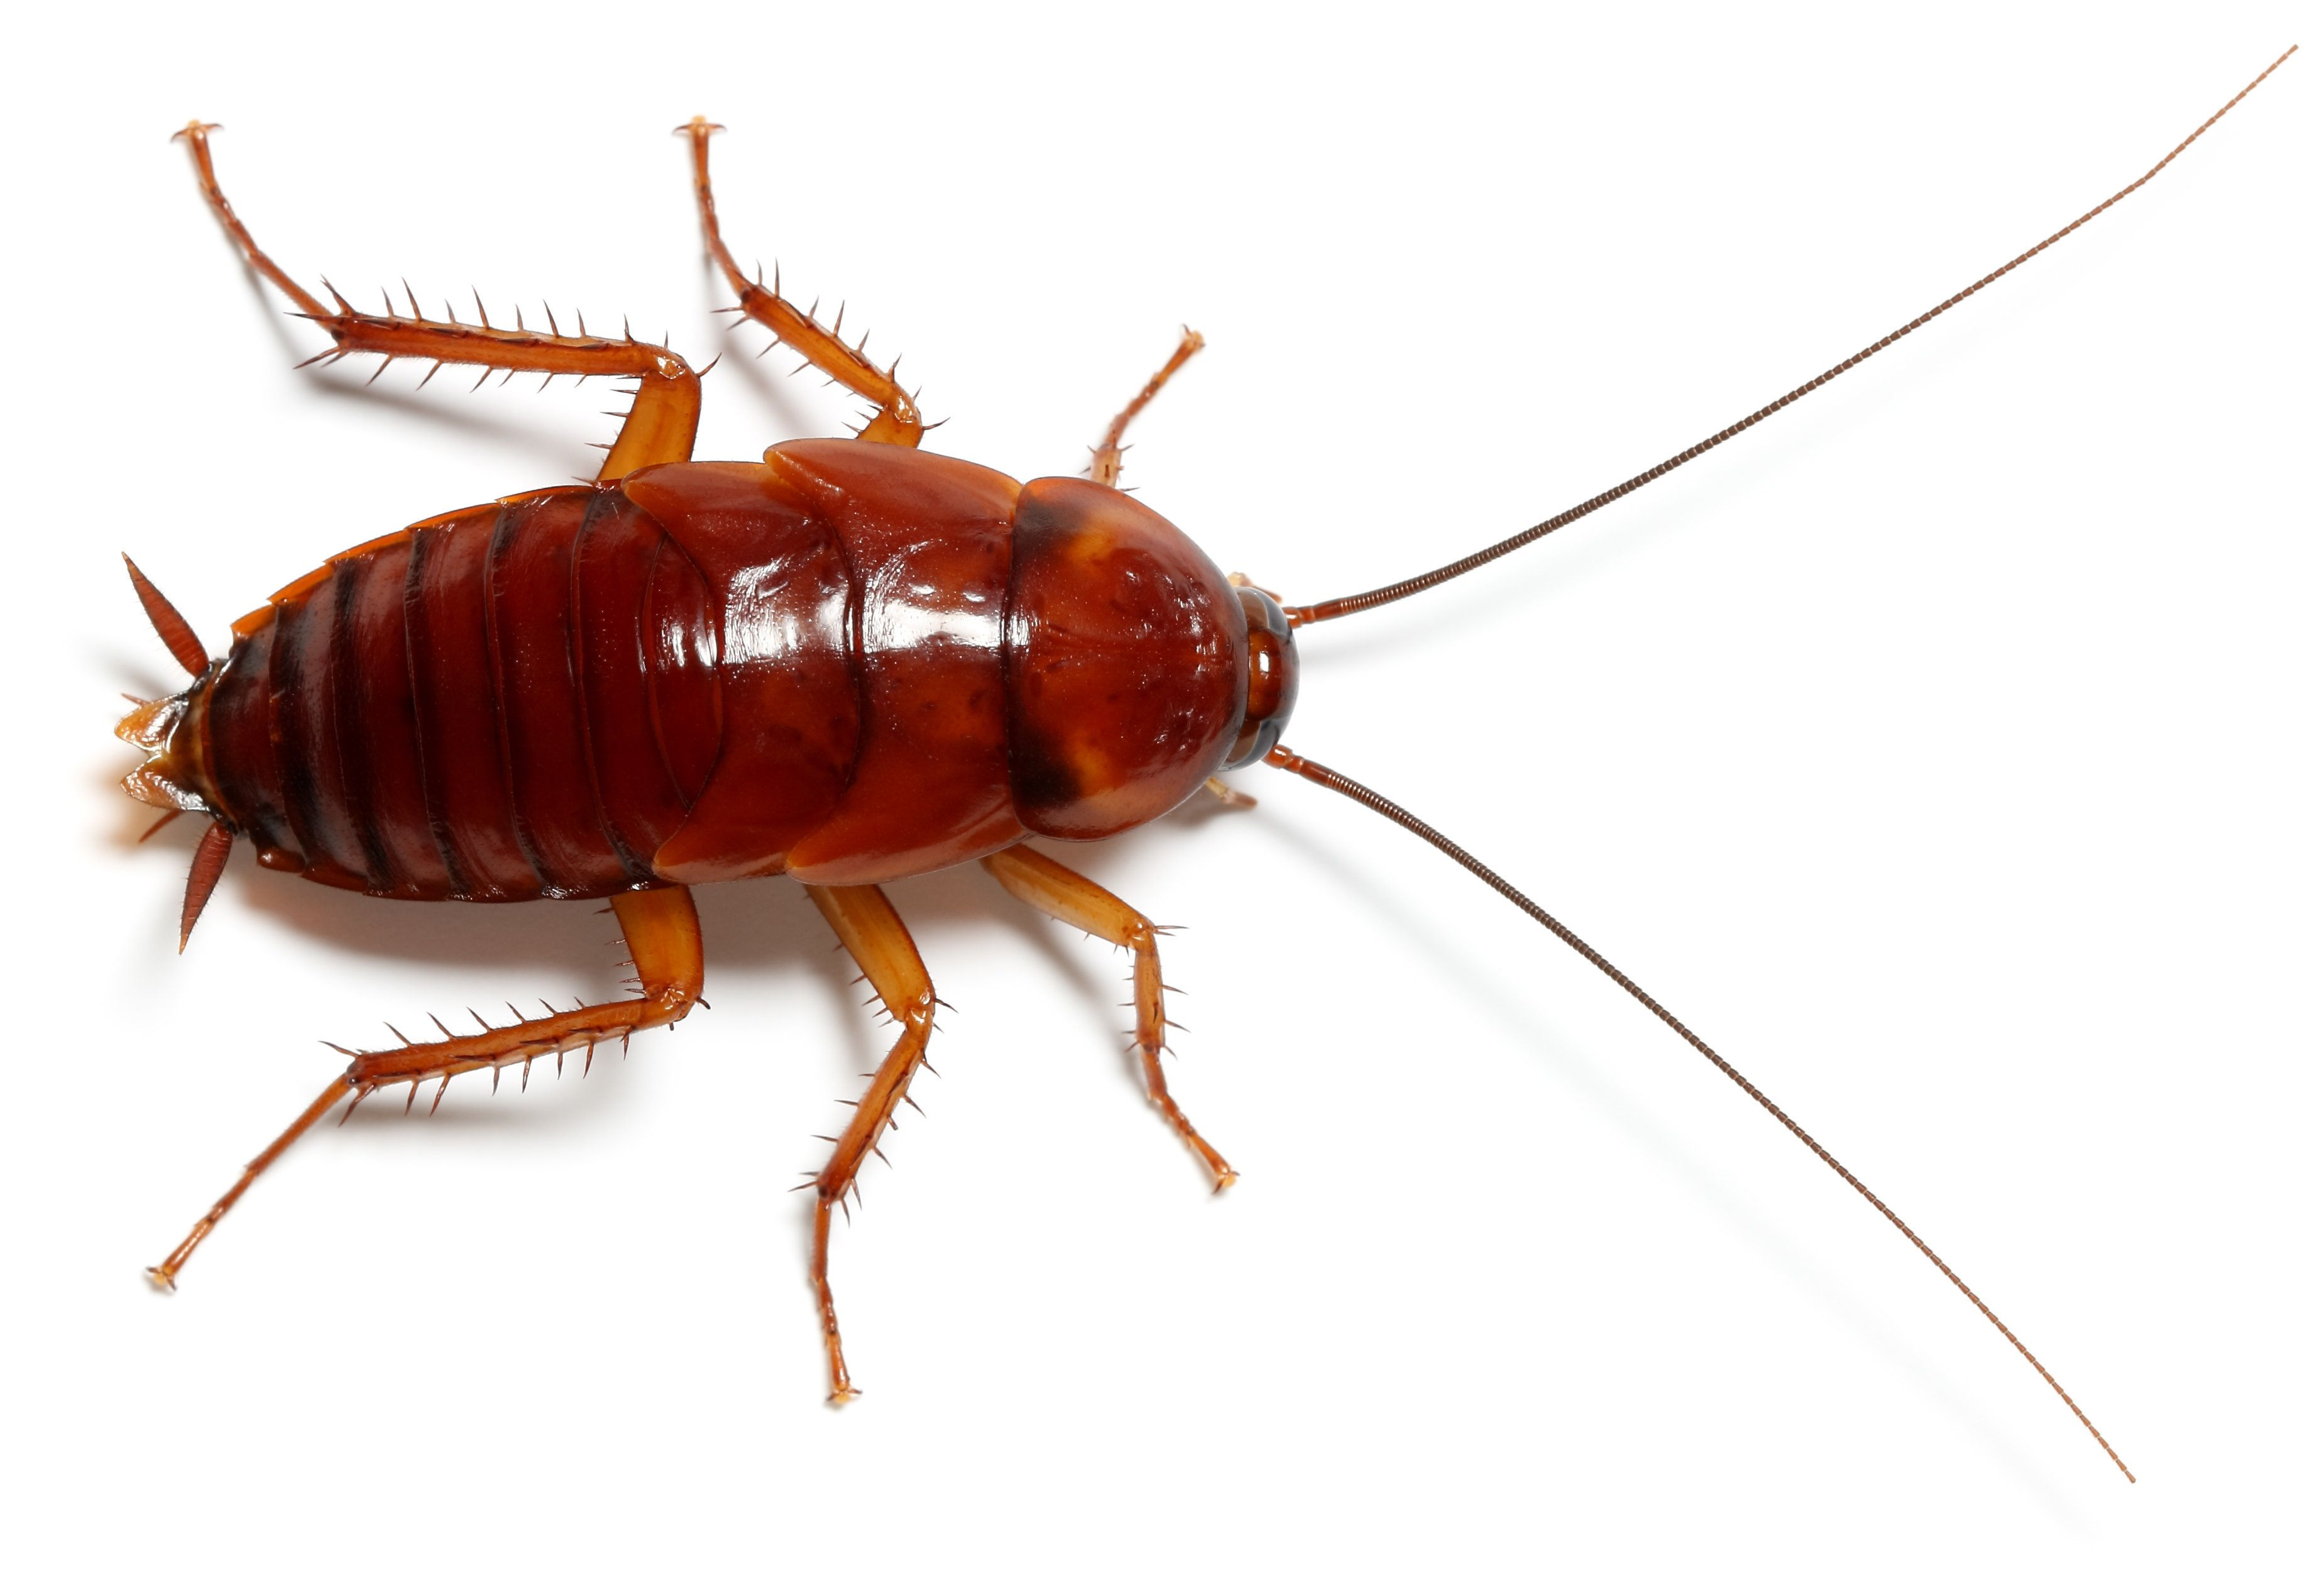 Cockroaches To Mutant Enzymes: 5 Radical Ideas To Tackle Humanity's